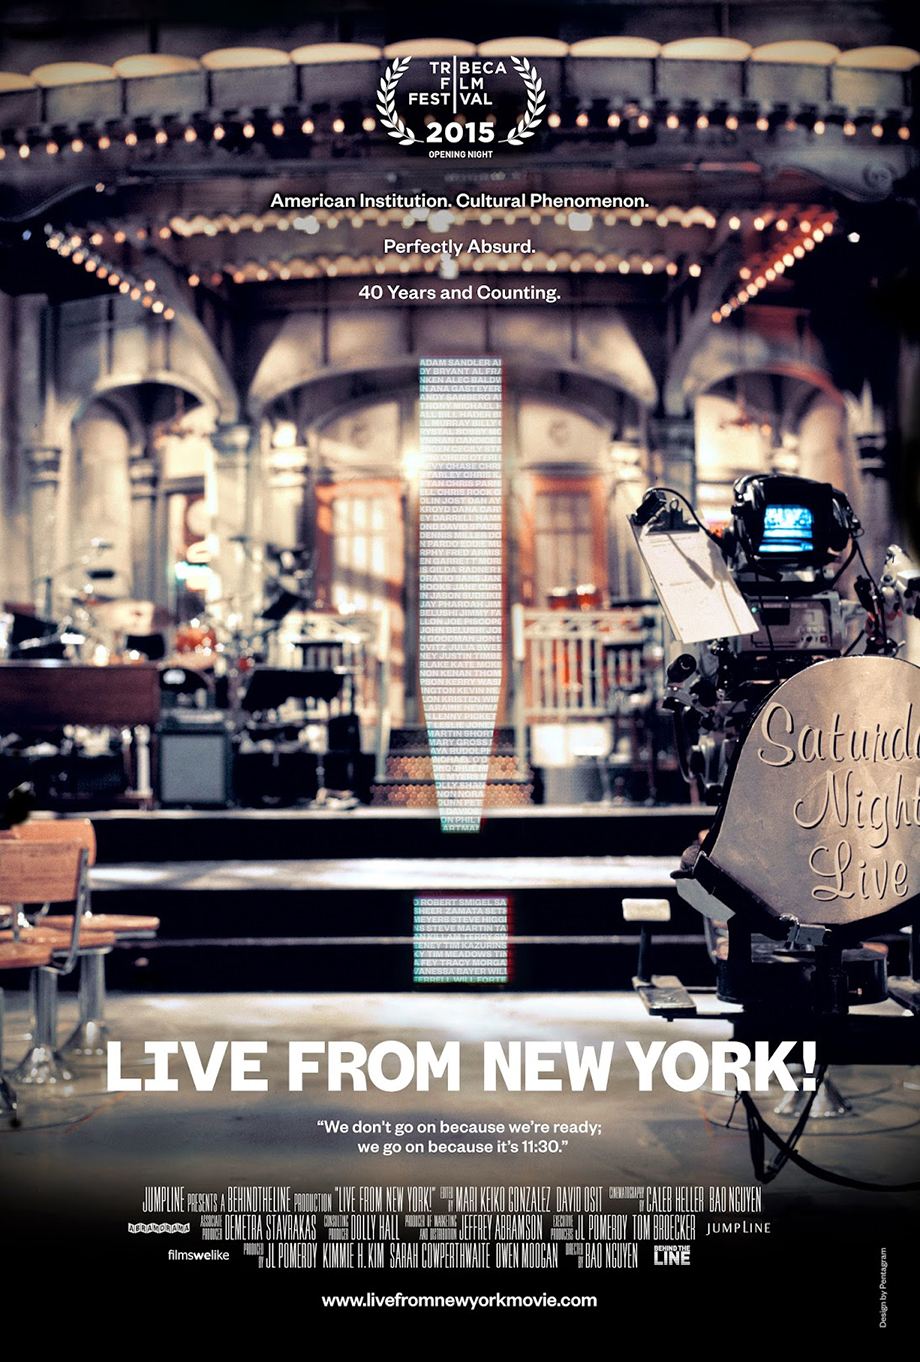 Live From New York! - poster.jpg